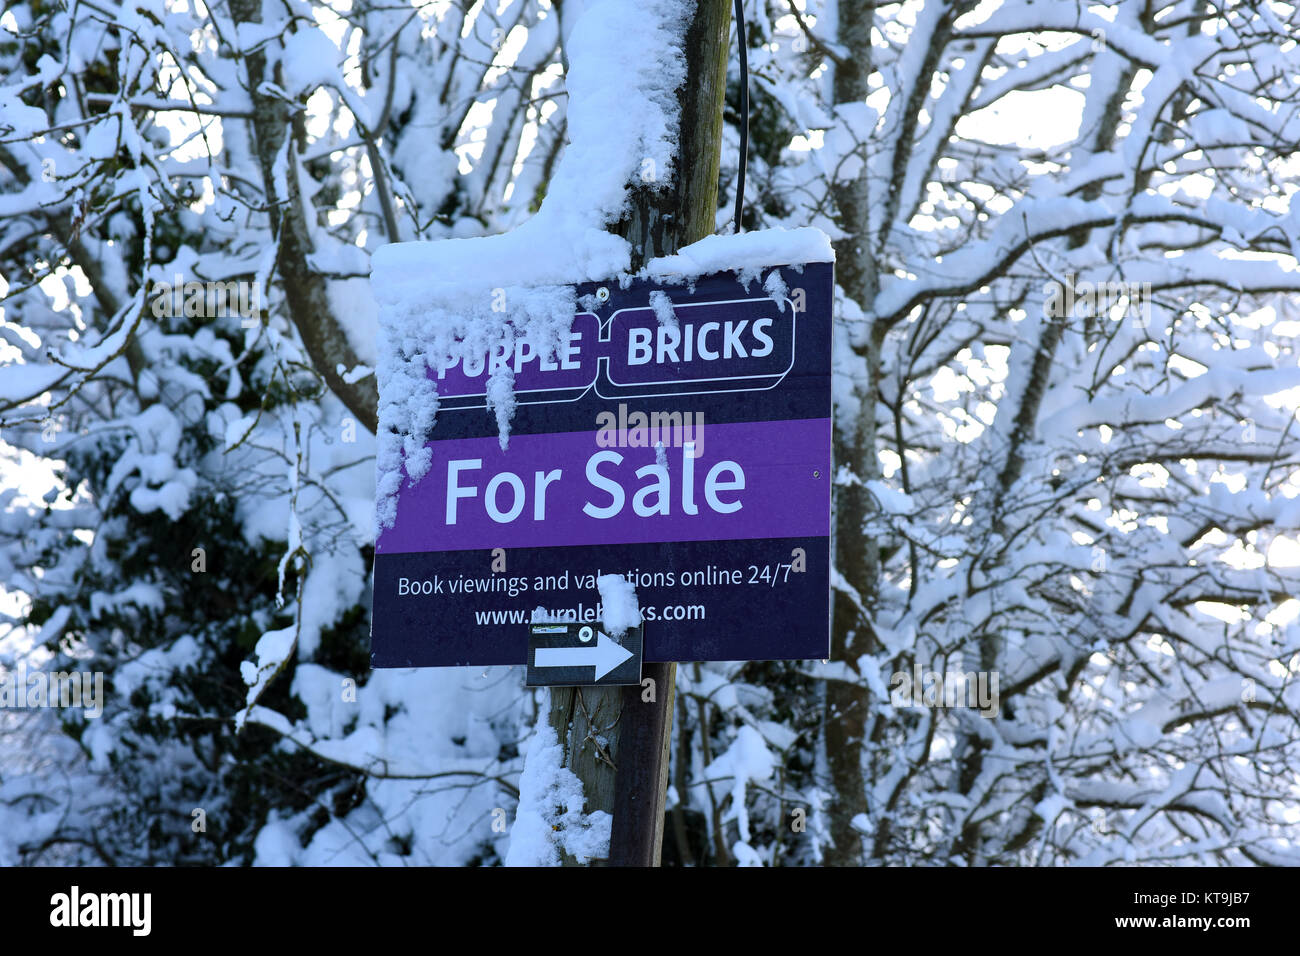 House for sale sign covered in winter snow 2017 - Stock Image